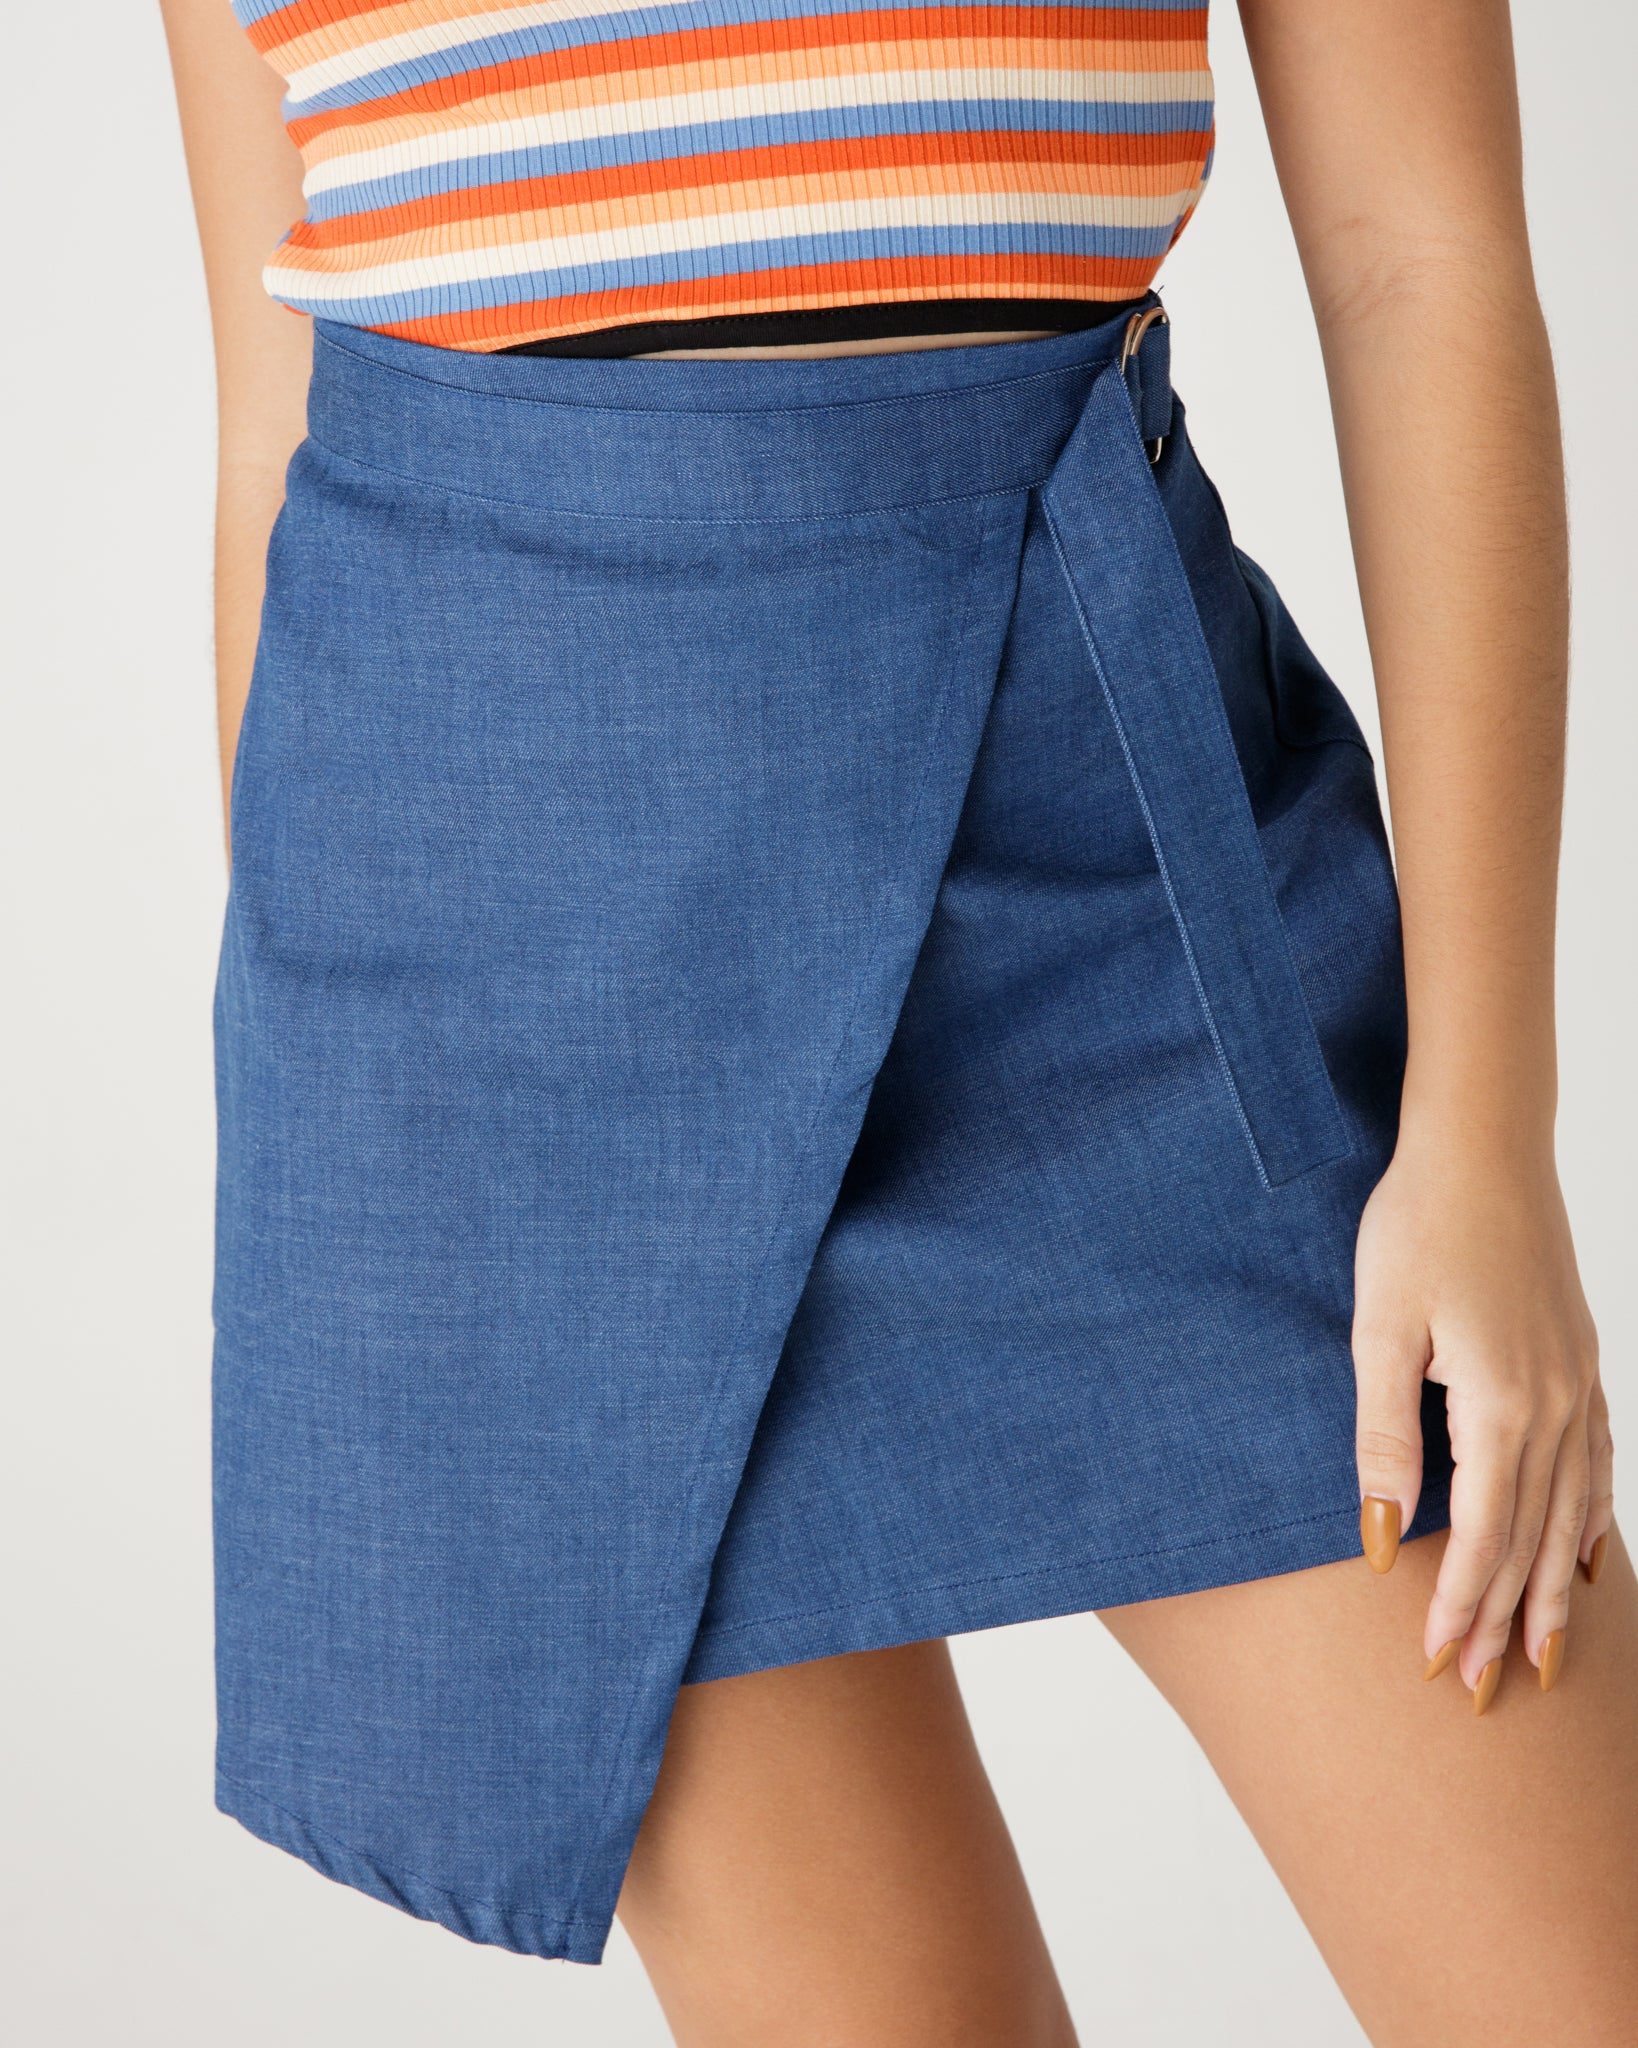 Syracuse Skirt